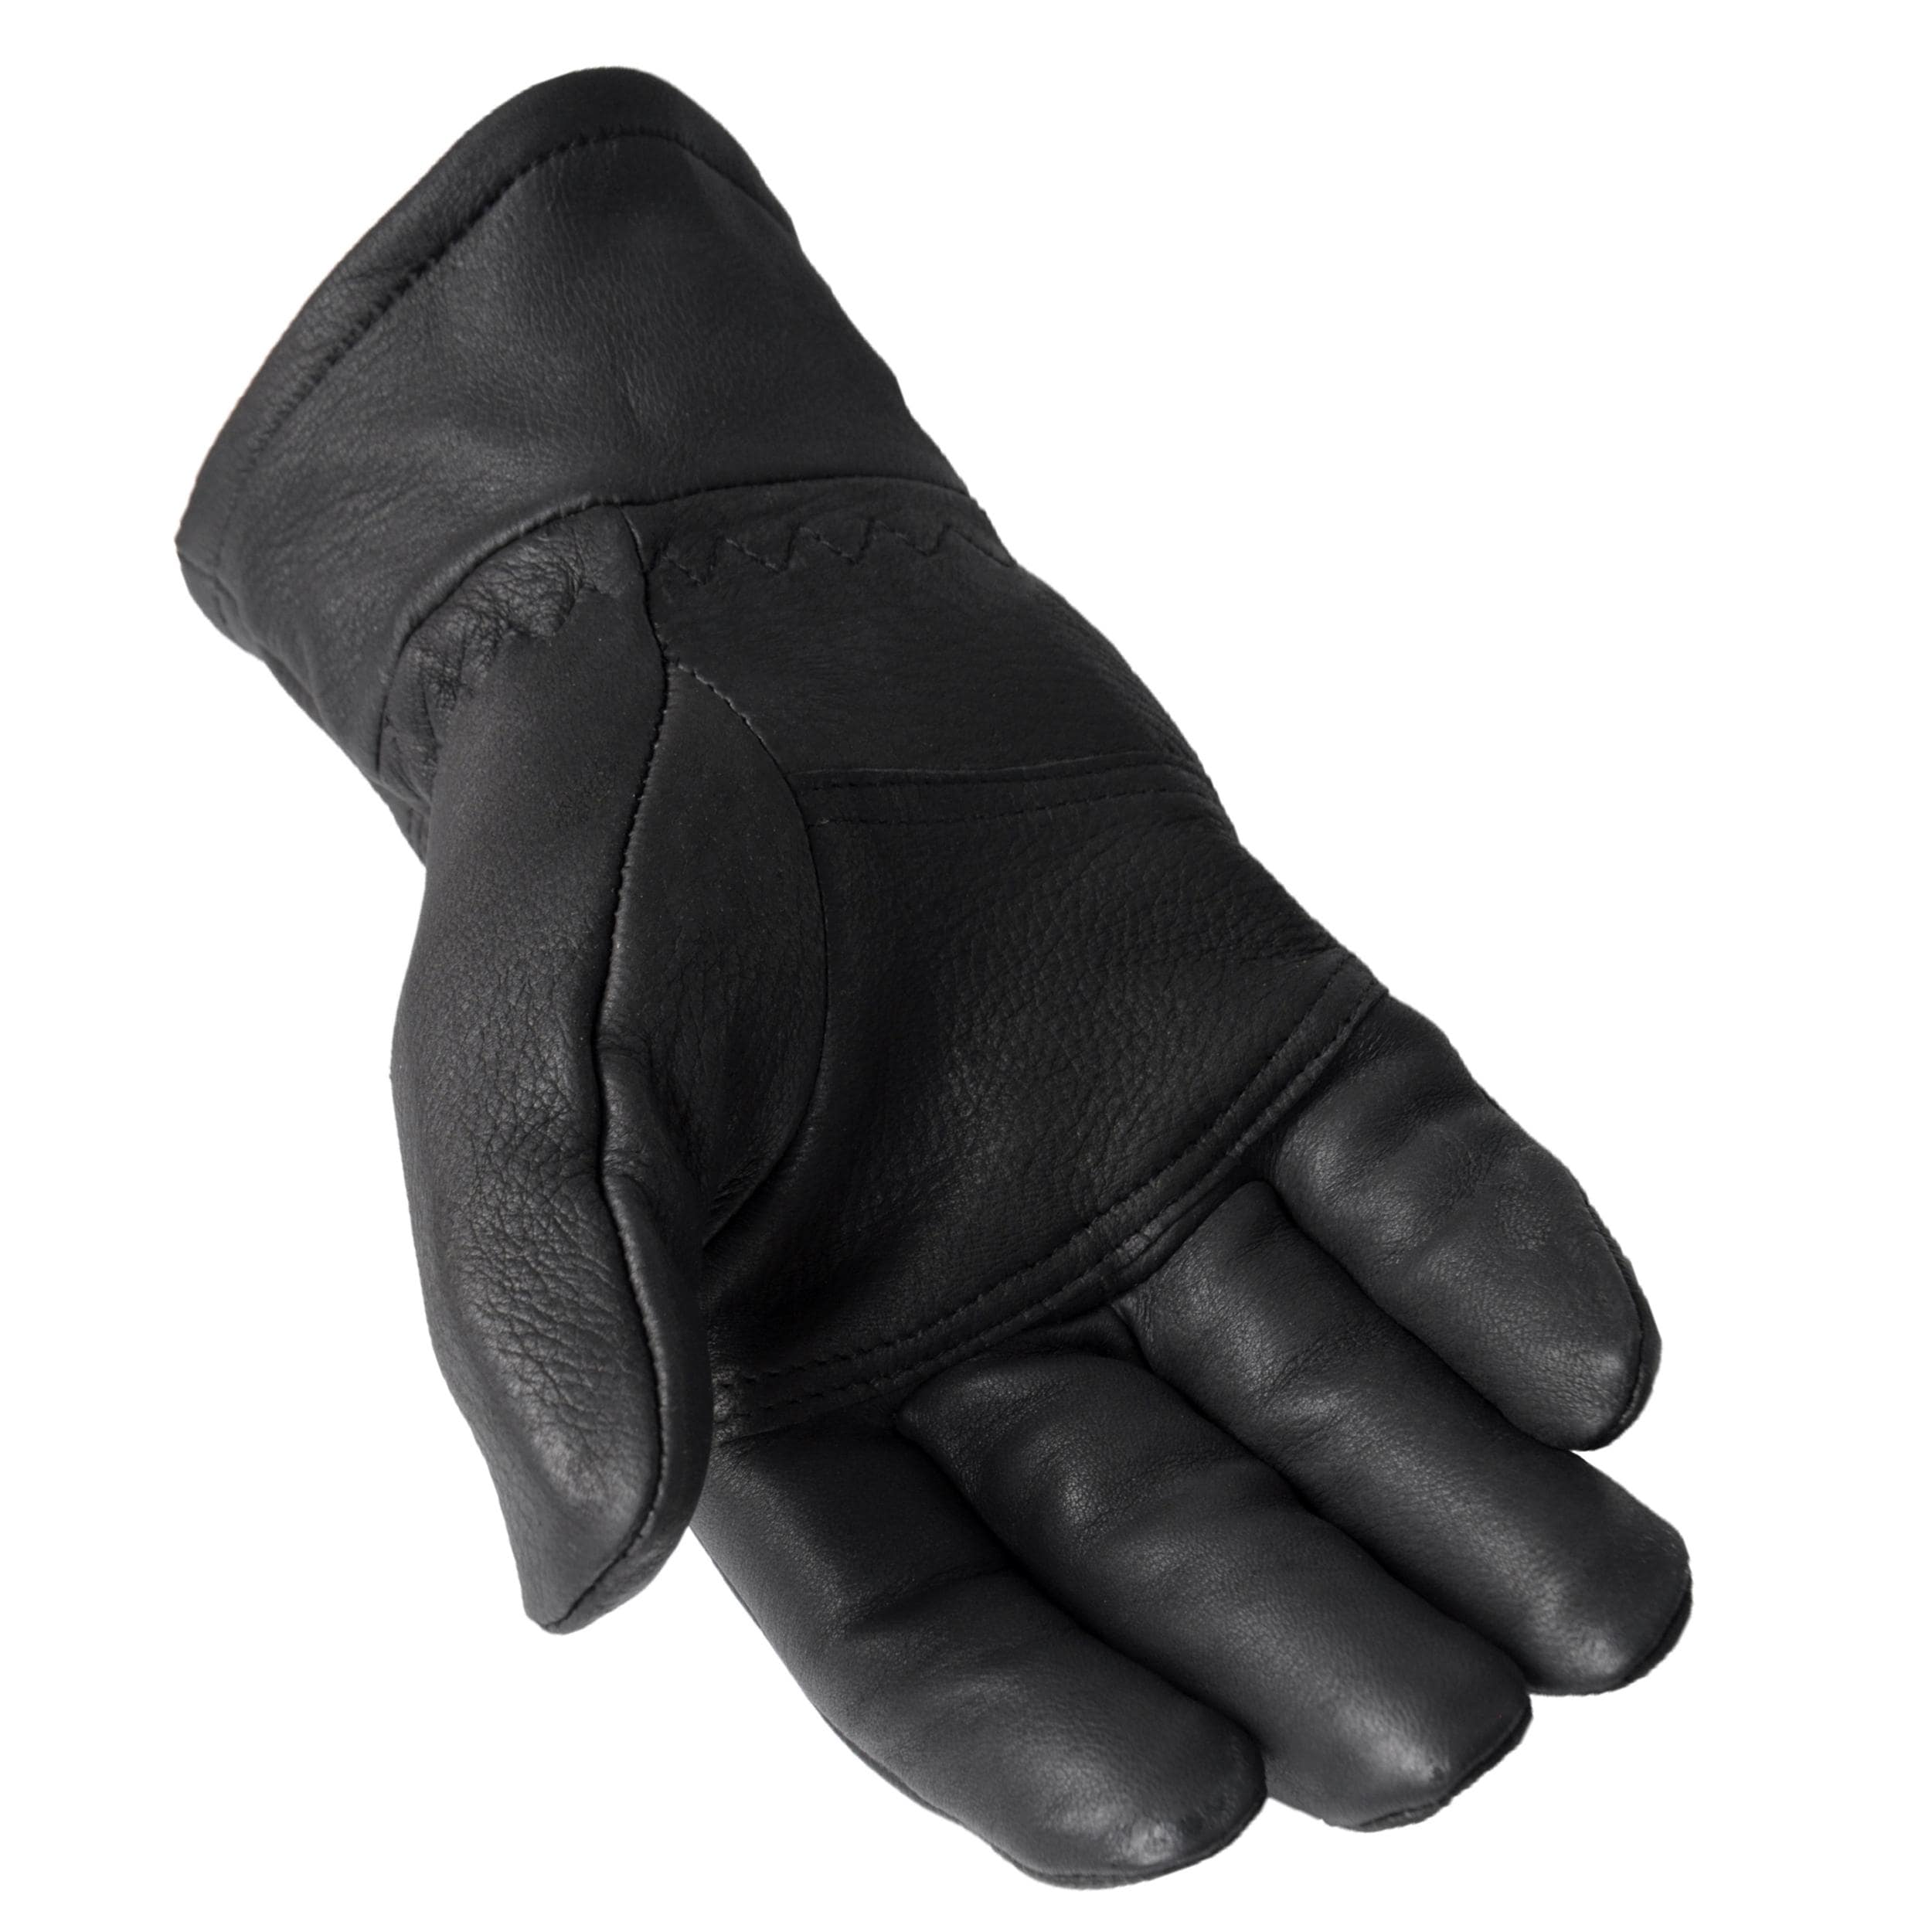 Ladies leather gloves navy - Mens Black Leather Gloves Lined Black Leather Deerskin Gloves Daxx Men S Lined Top Grain